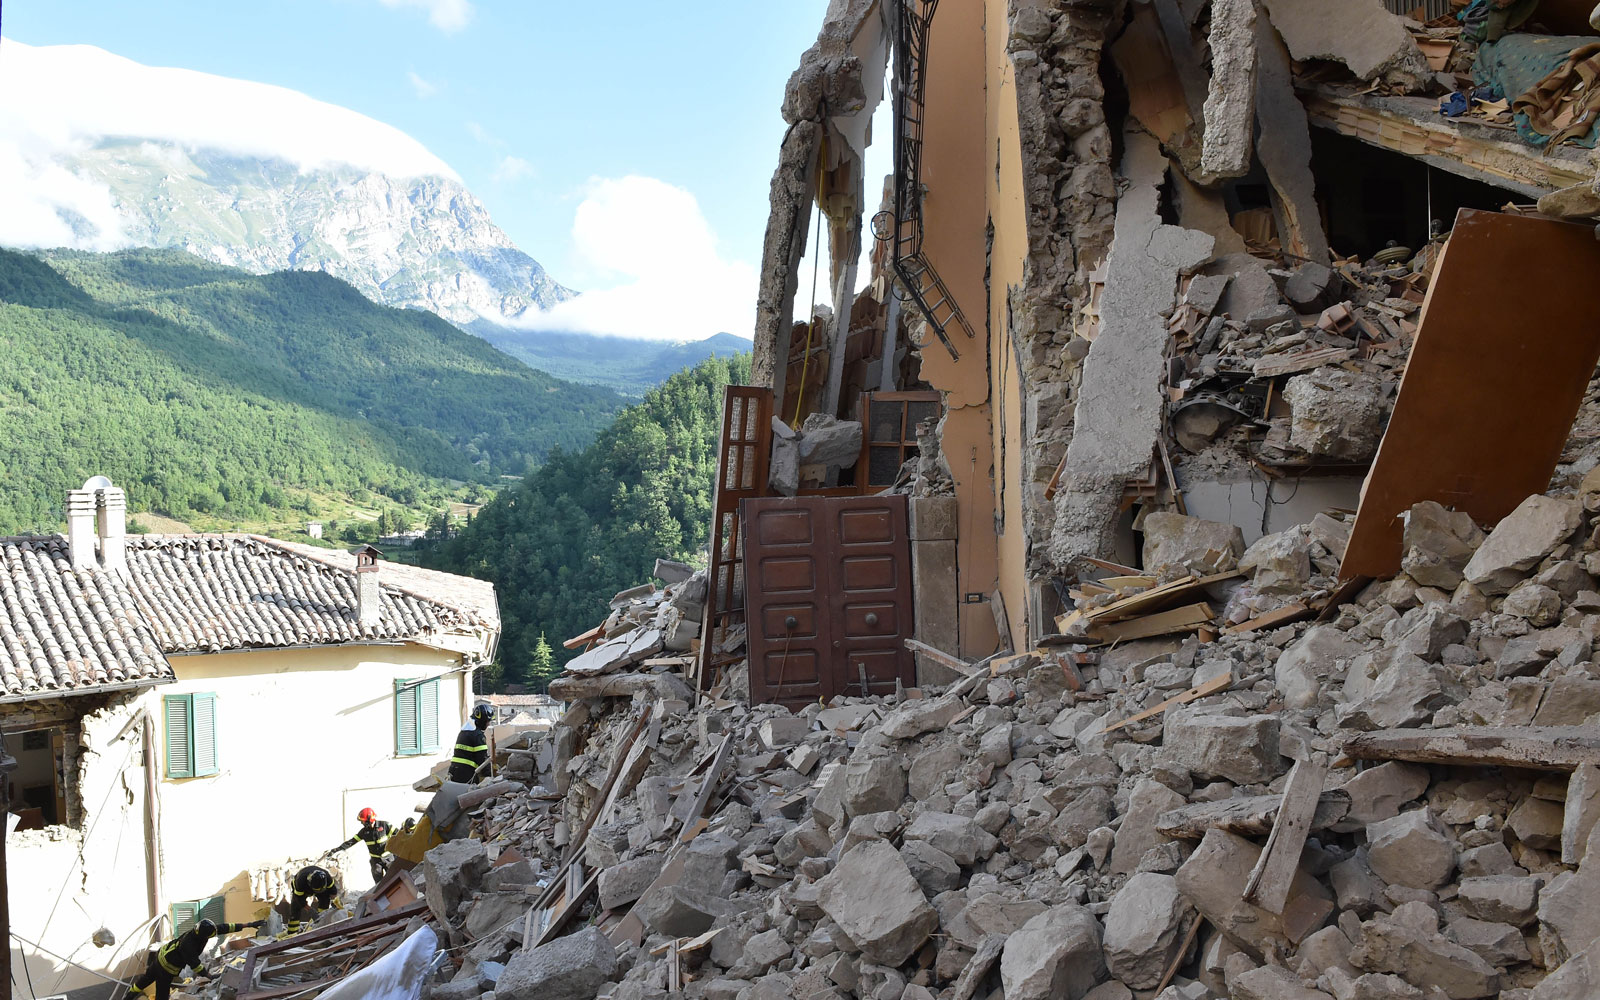 Destruction in central Italy.